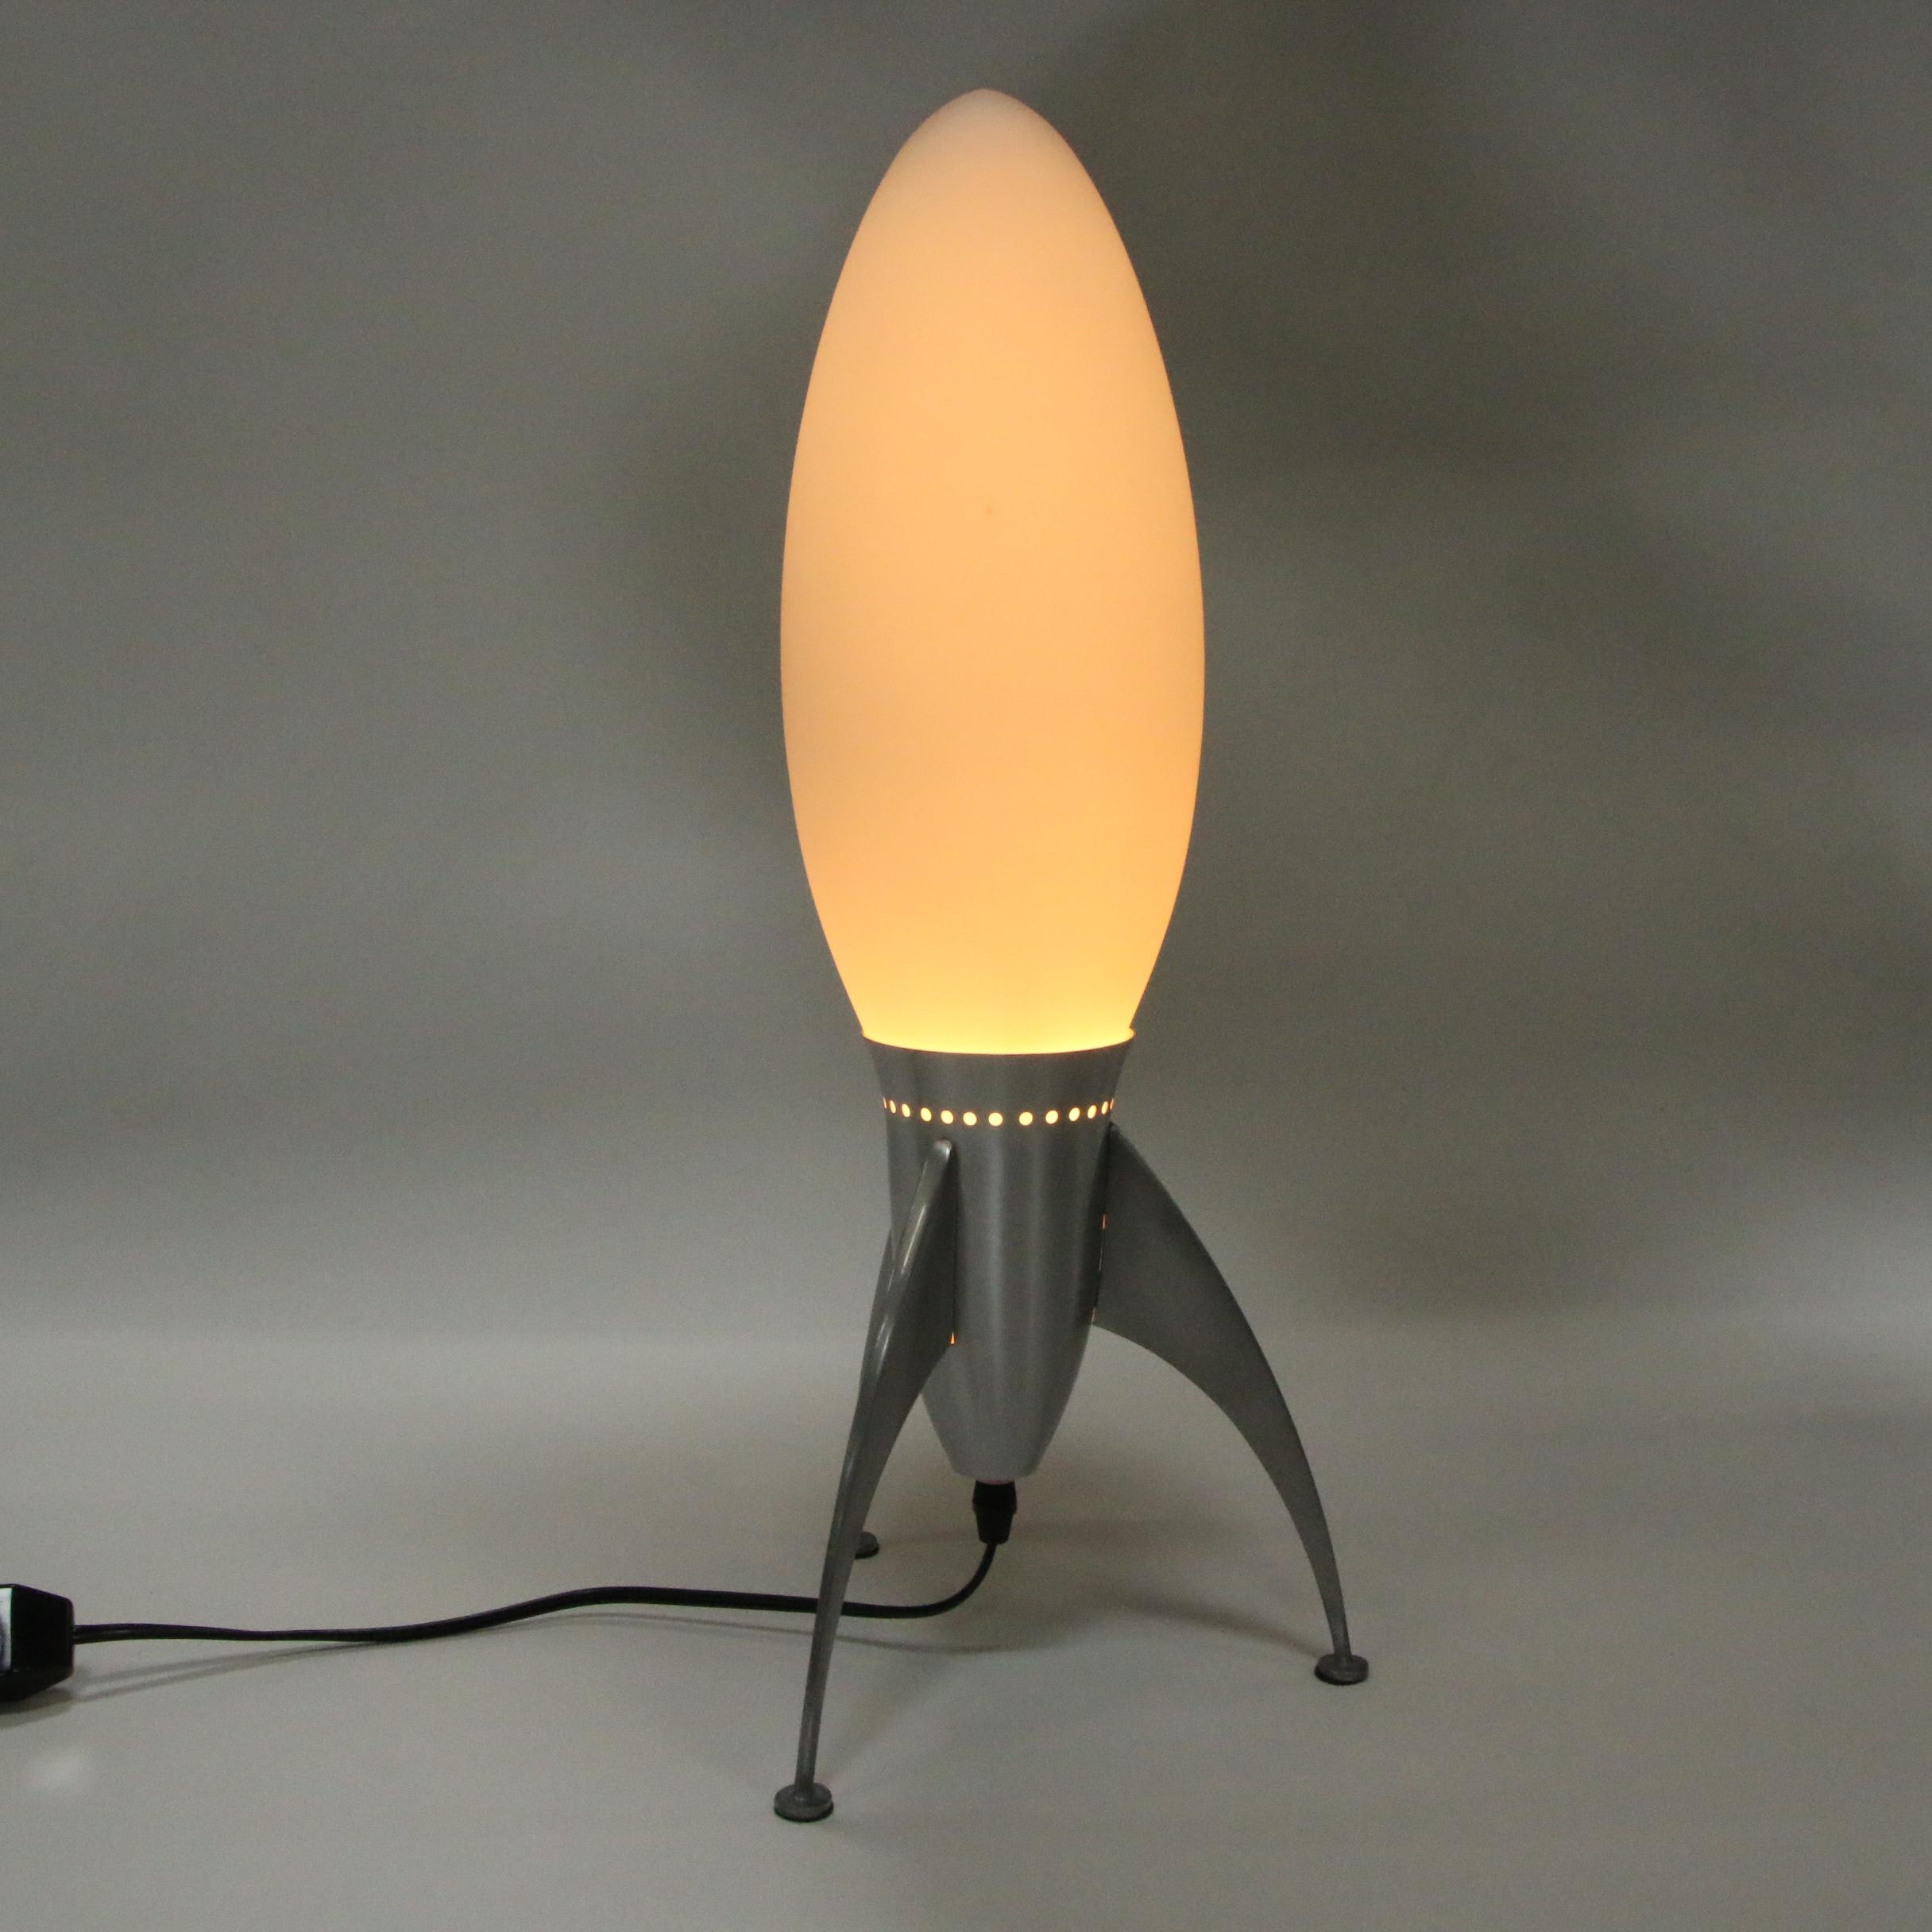 Kaoyi Electric Co. Spaceship Accent Lamp, Mid-Century